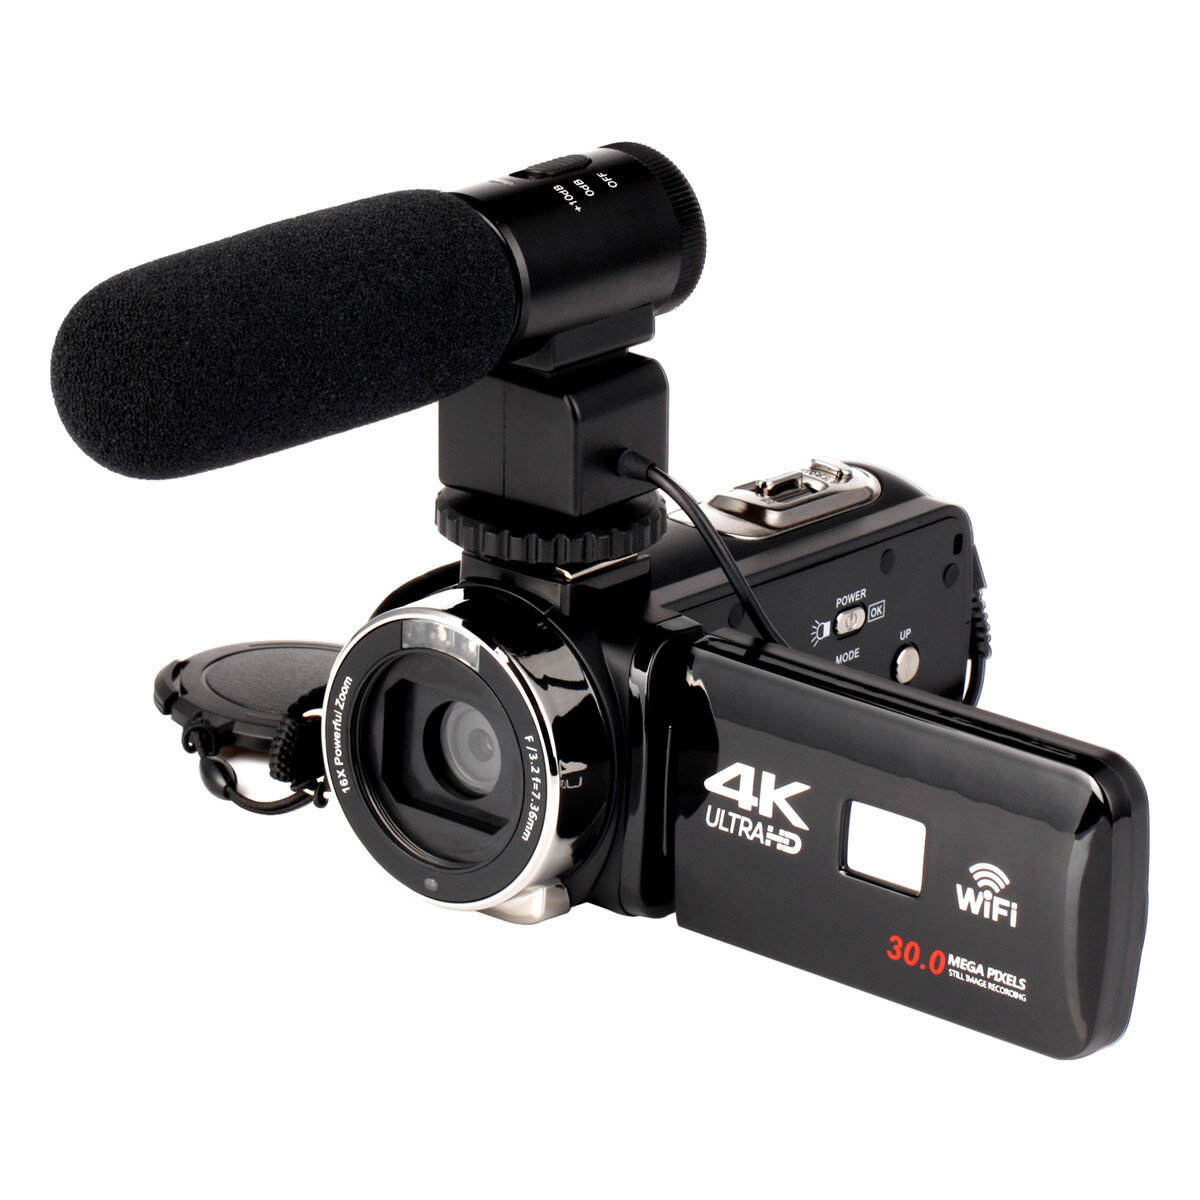 4K WiFi Ultra HD 1080P 16X ZOOM Digital Video Cámara Videocámara DV con Lente y Micrófono